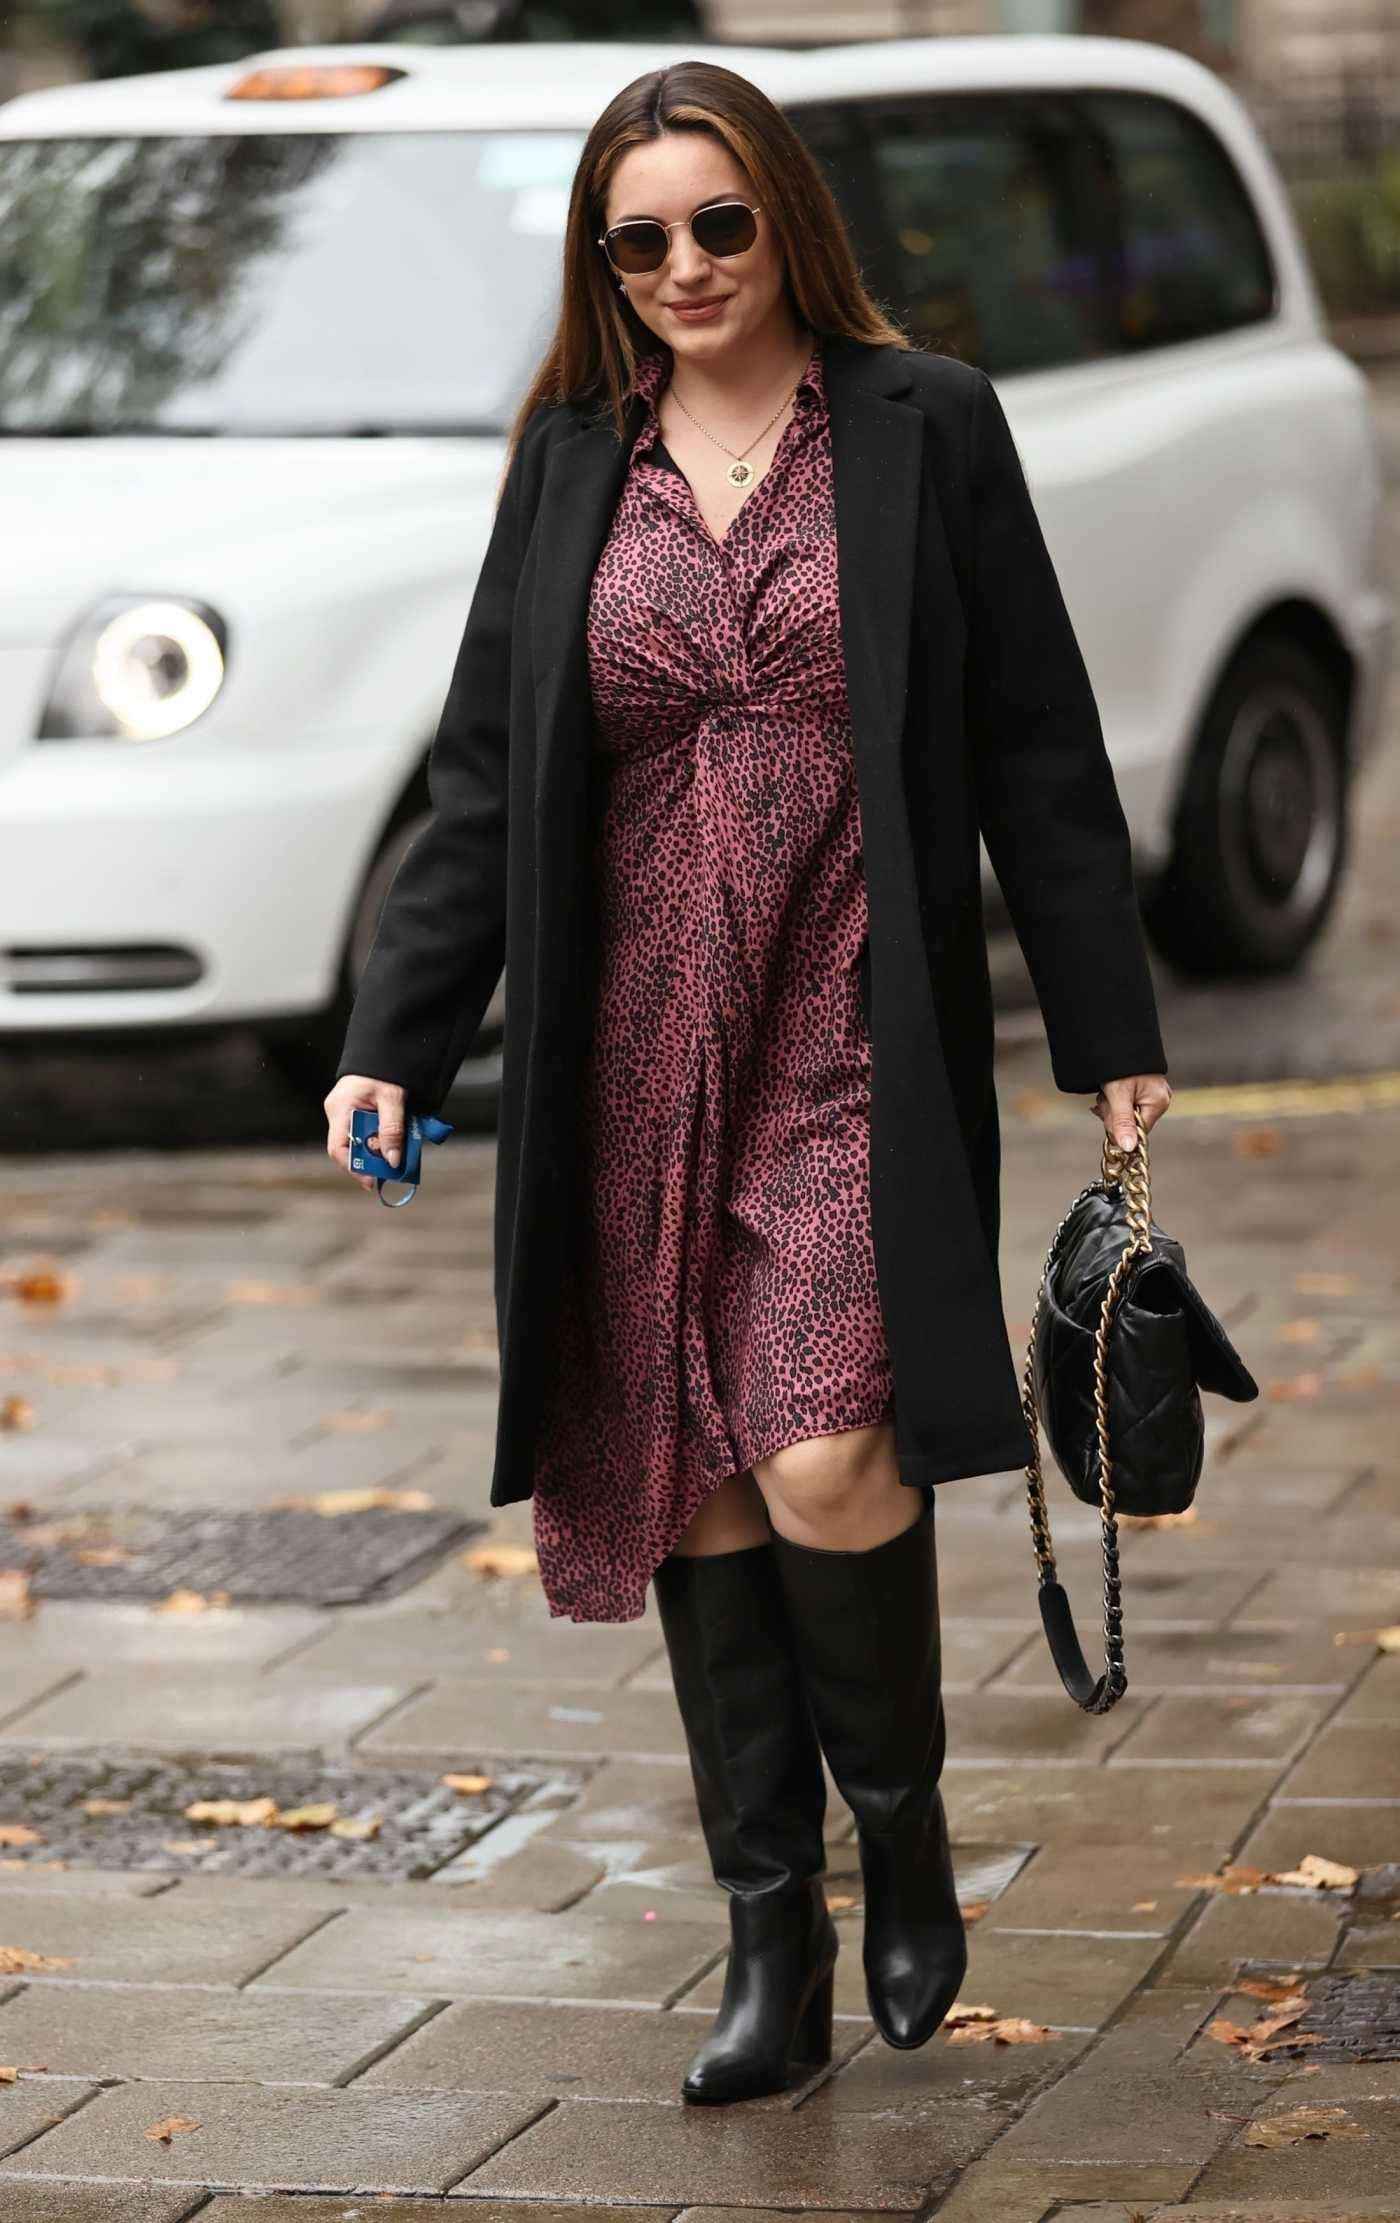 Kelly Brook in a Black Coat Arrives at the Heart Radio in London 10/12/2020